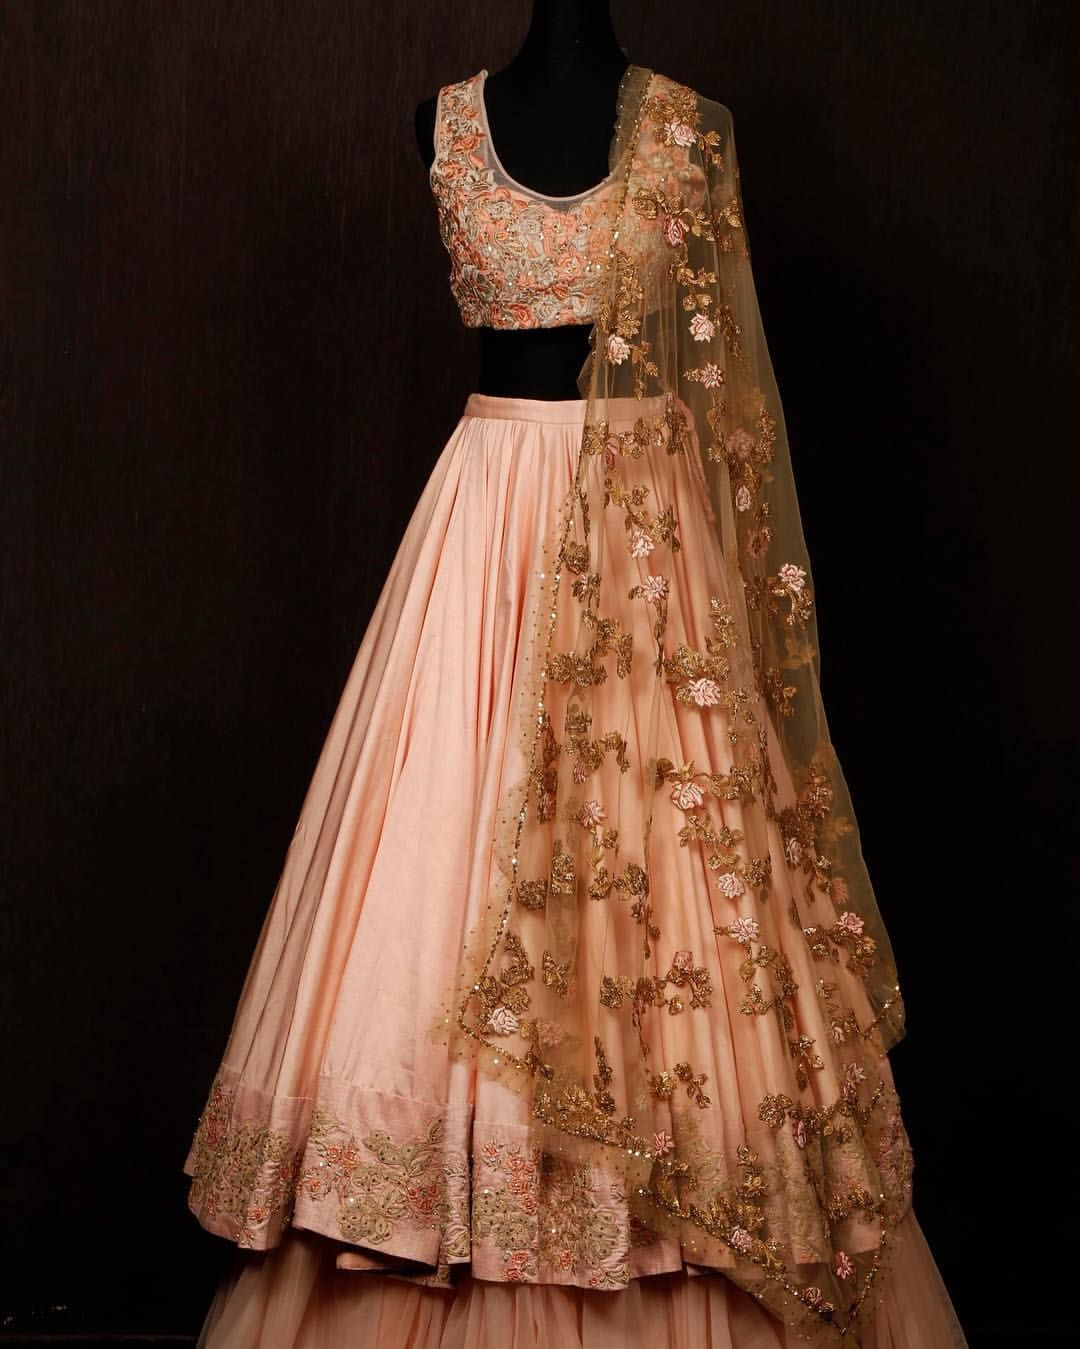 Pin by heer divecha on Beautiful Bridal Pinterest Store